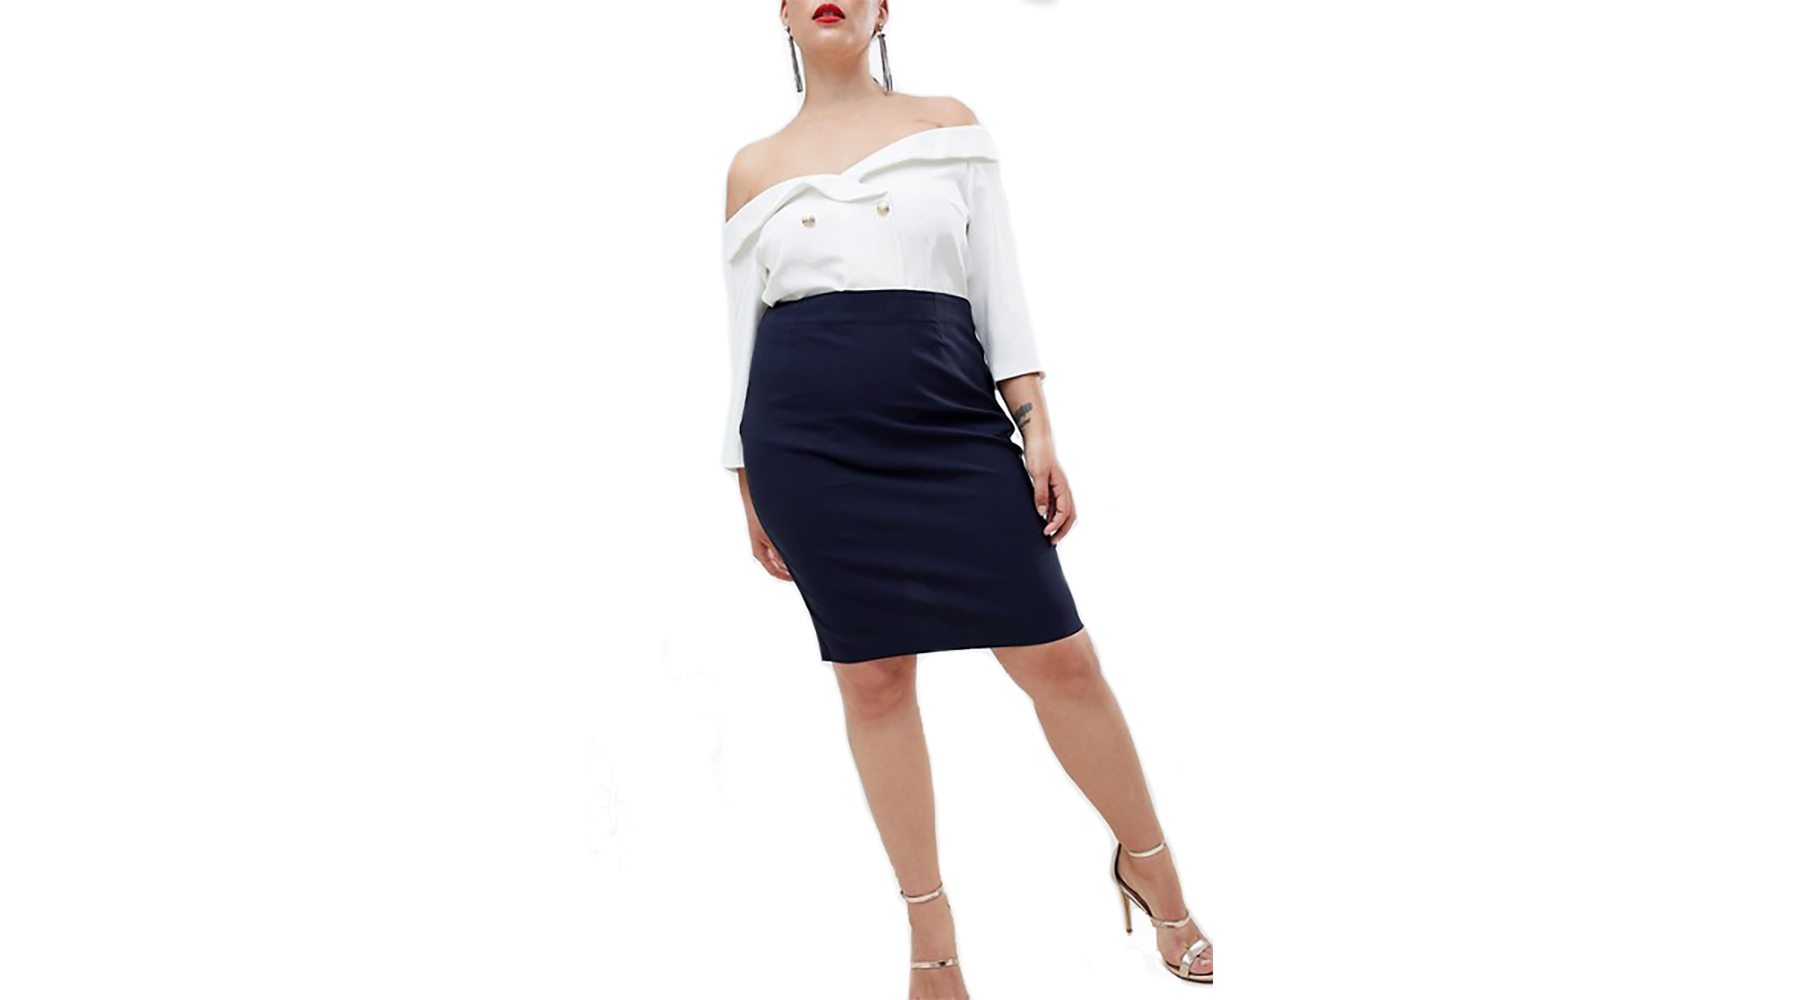 42002d76e Damenmode NWT SPANX FAUX LEATHER PENCIL SKIRT Black #2019R High Waist  Slimming $118 size S